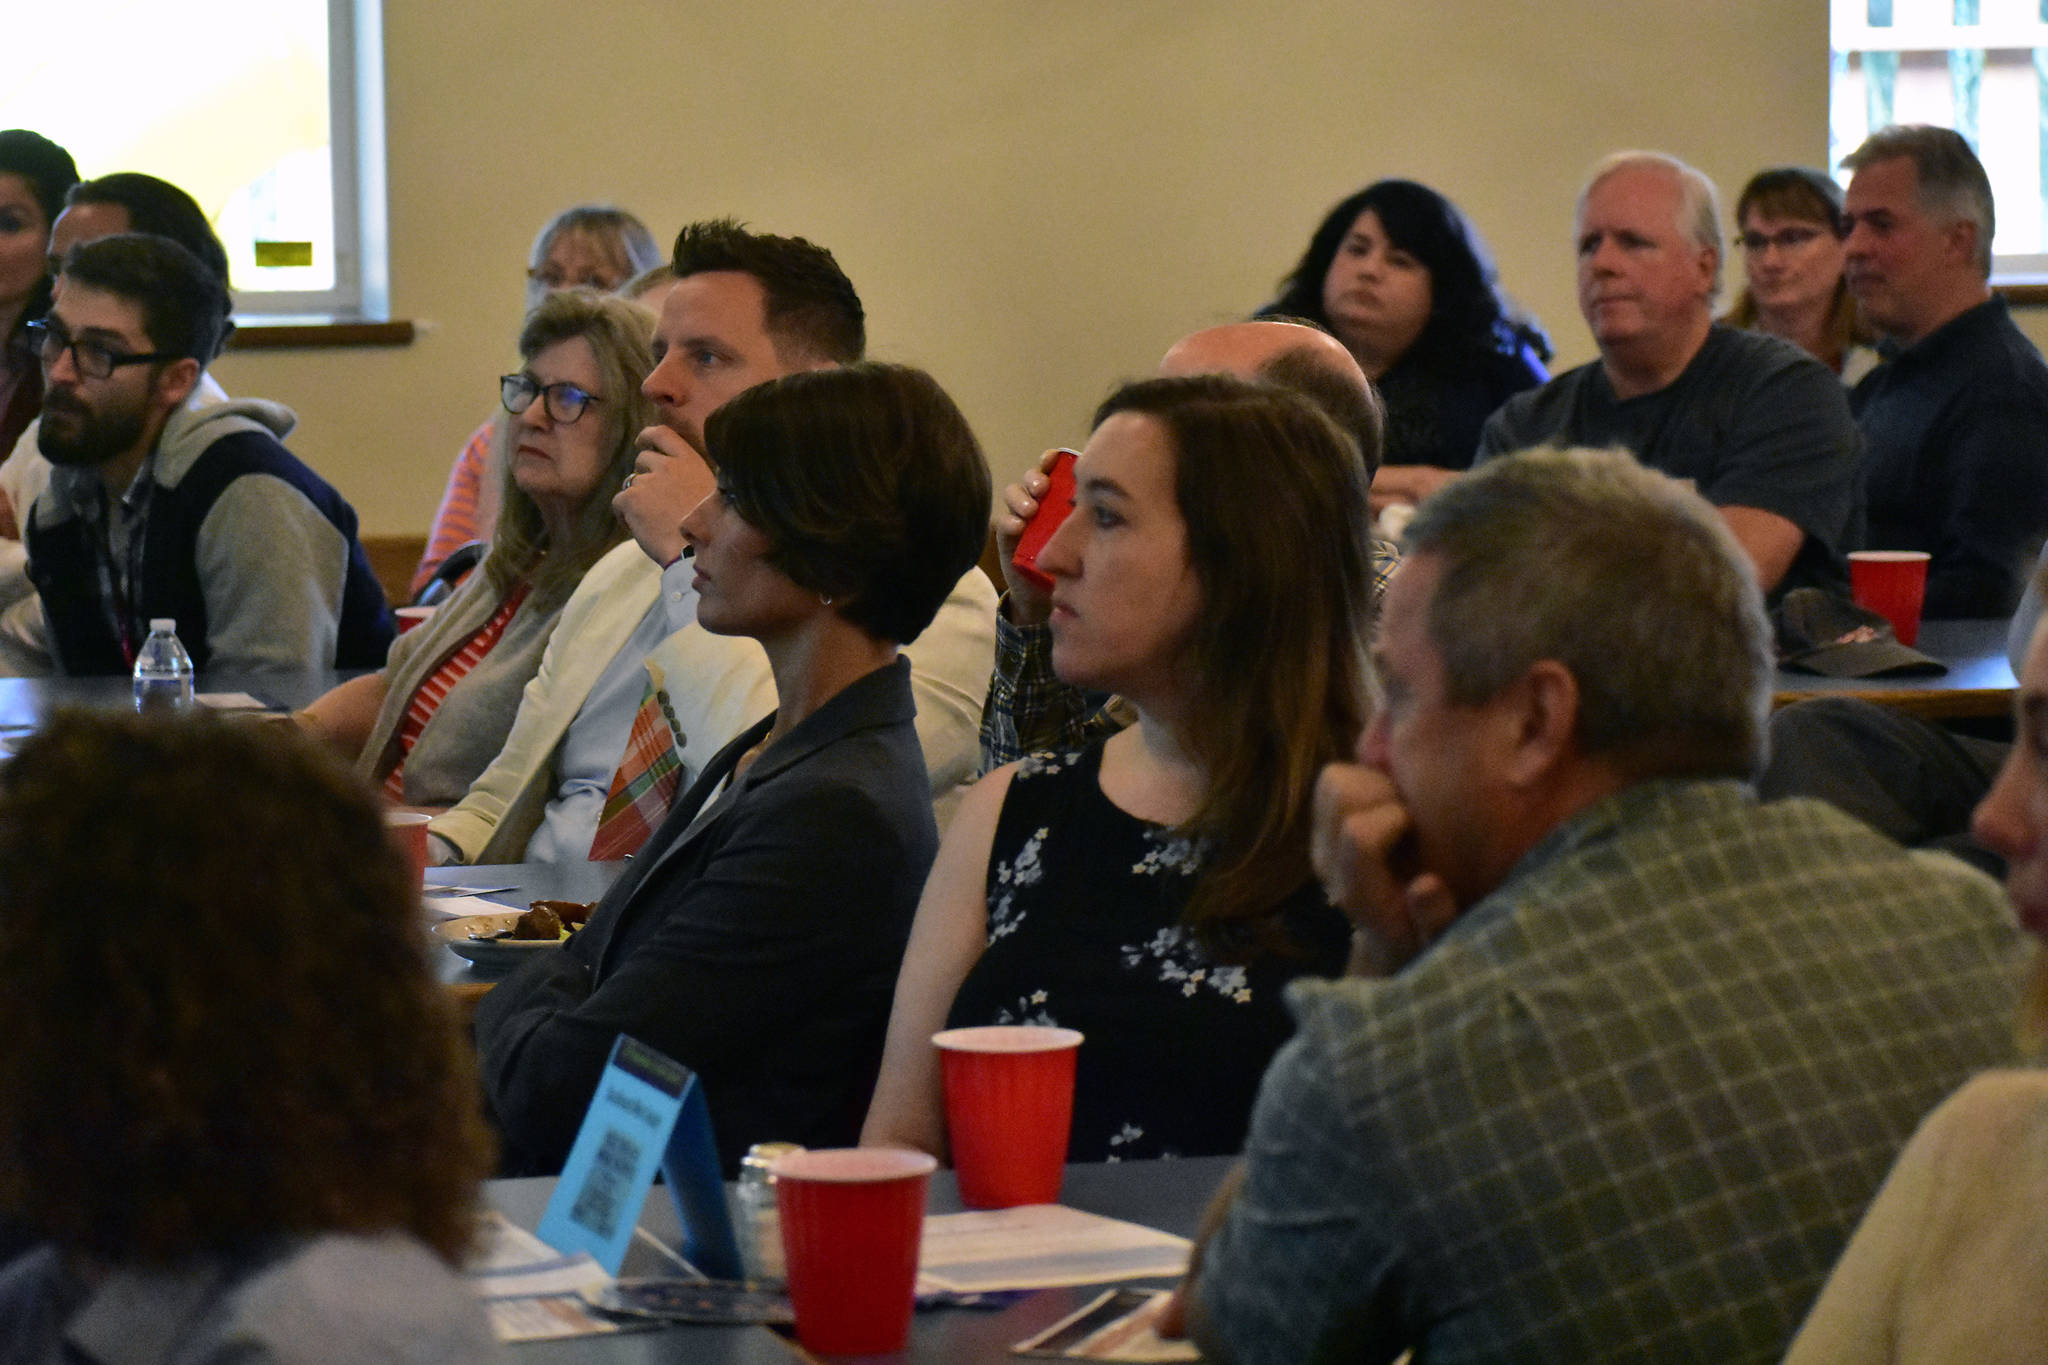 The audience at the Moose Lodge listens to Frank Reid speak at the Juneau Chamber of Commerce luncheon on Thursday, Sept. 12, 2019. (Peter Segall | Juneau Empire)